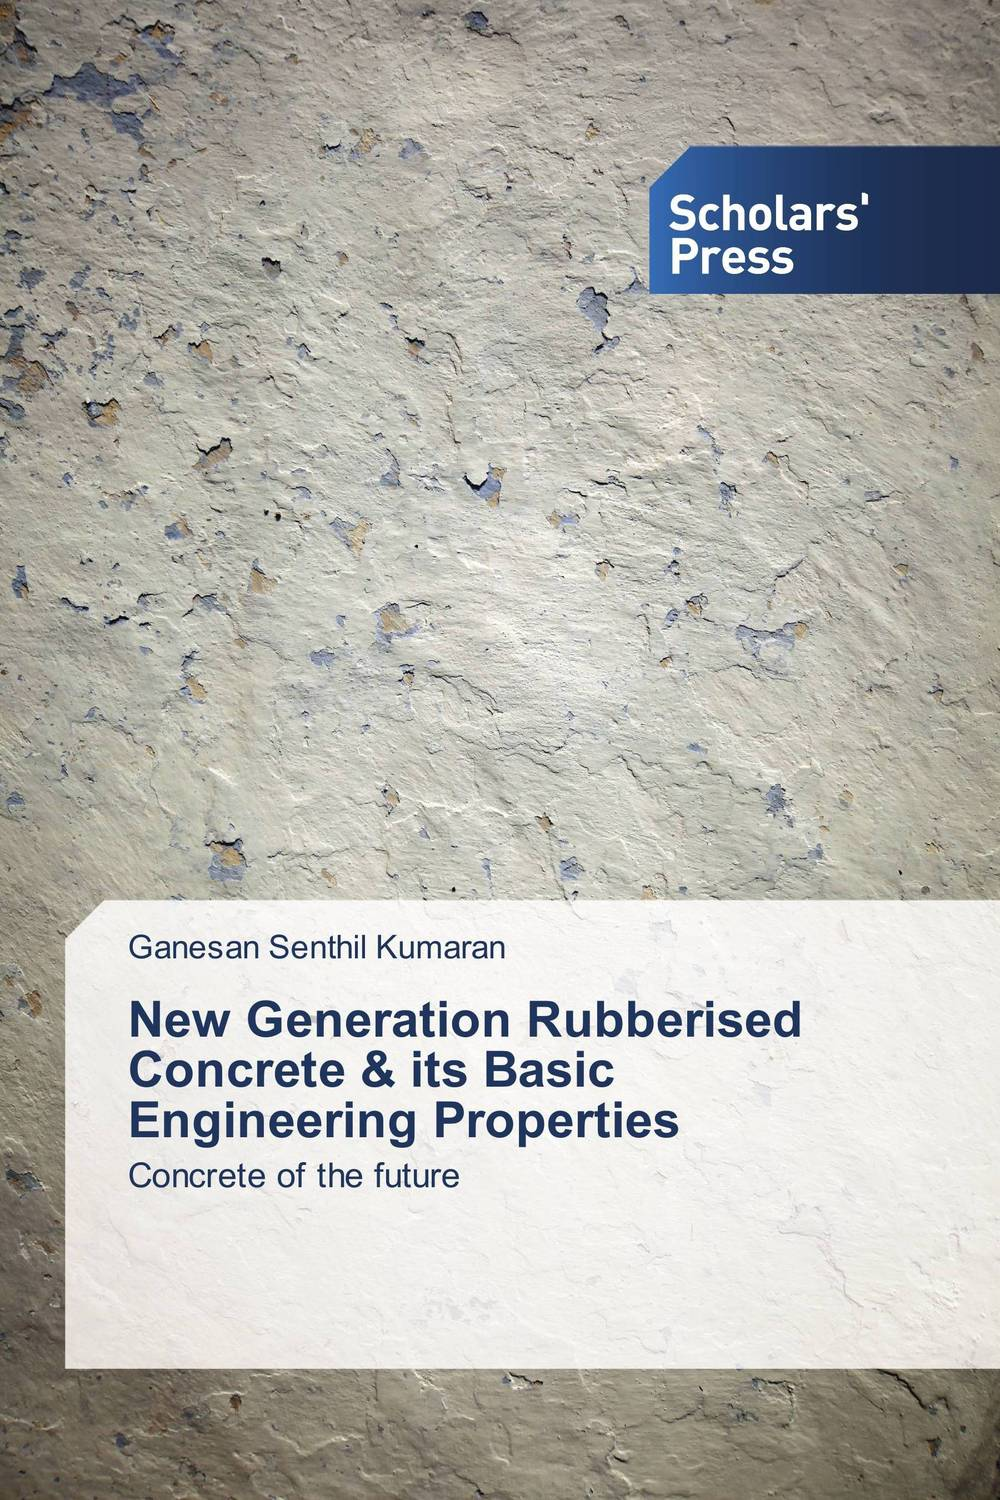 New Generation Rubberised Concrete & its Basic Engineering Properties fatigue analysis of asphalt concrete based on crack development